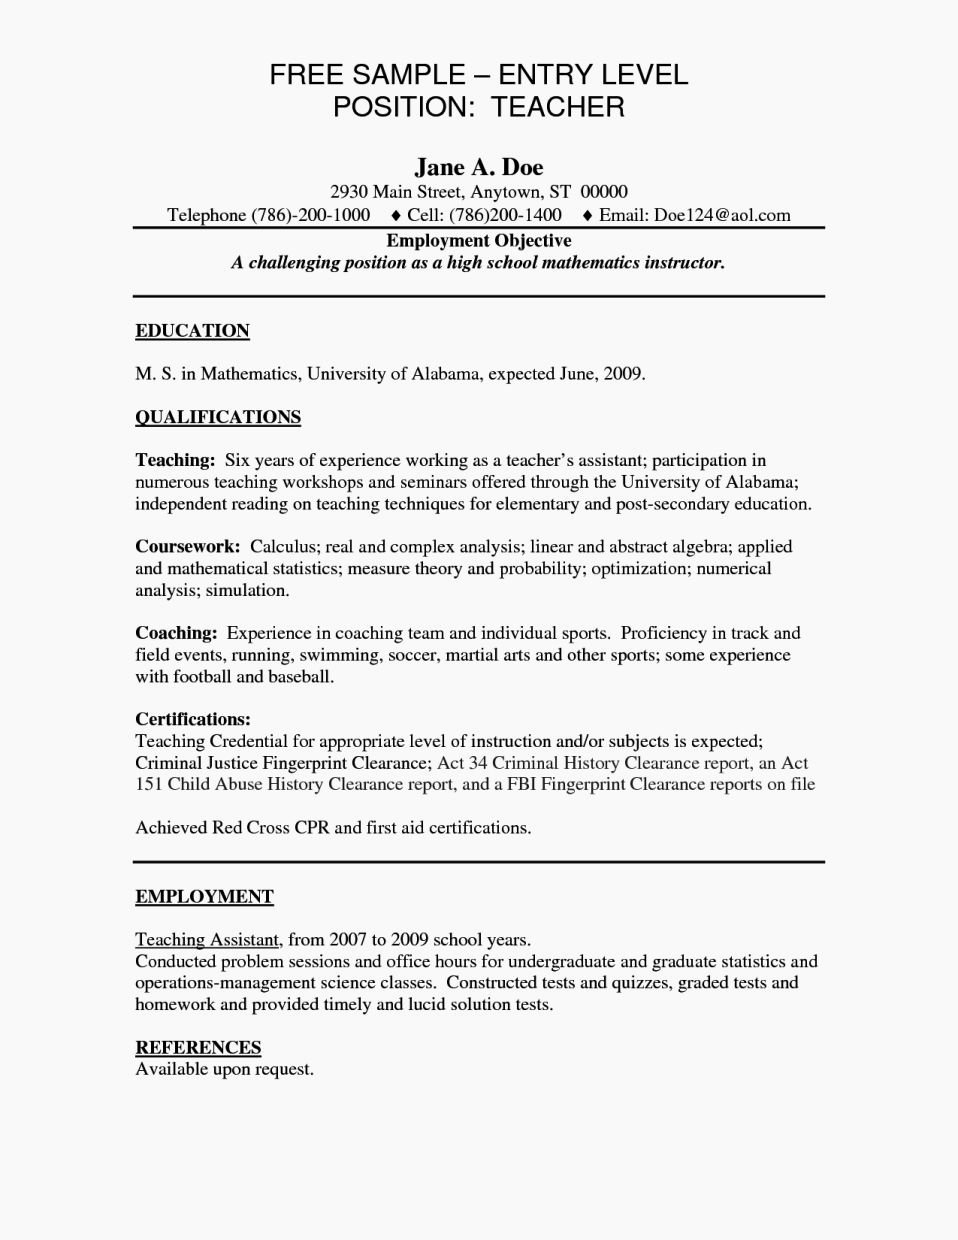 Examples Resumes for Entry Level Jobs